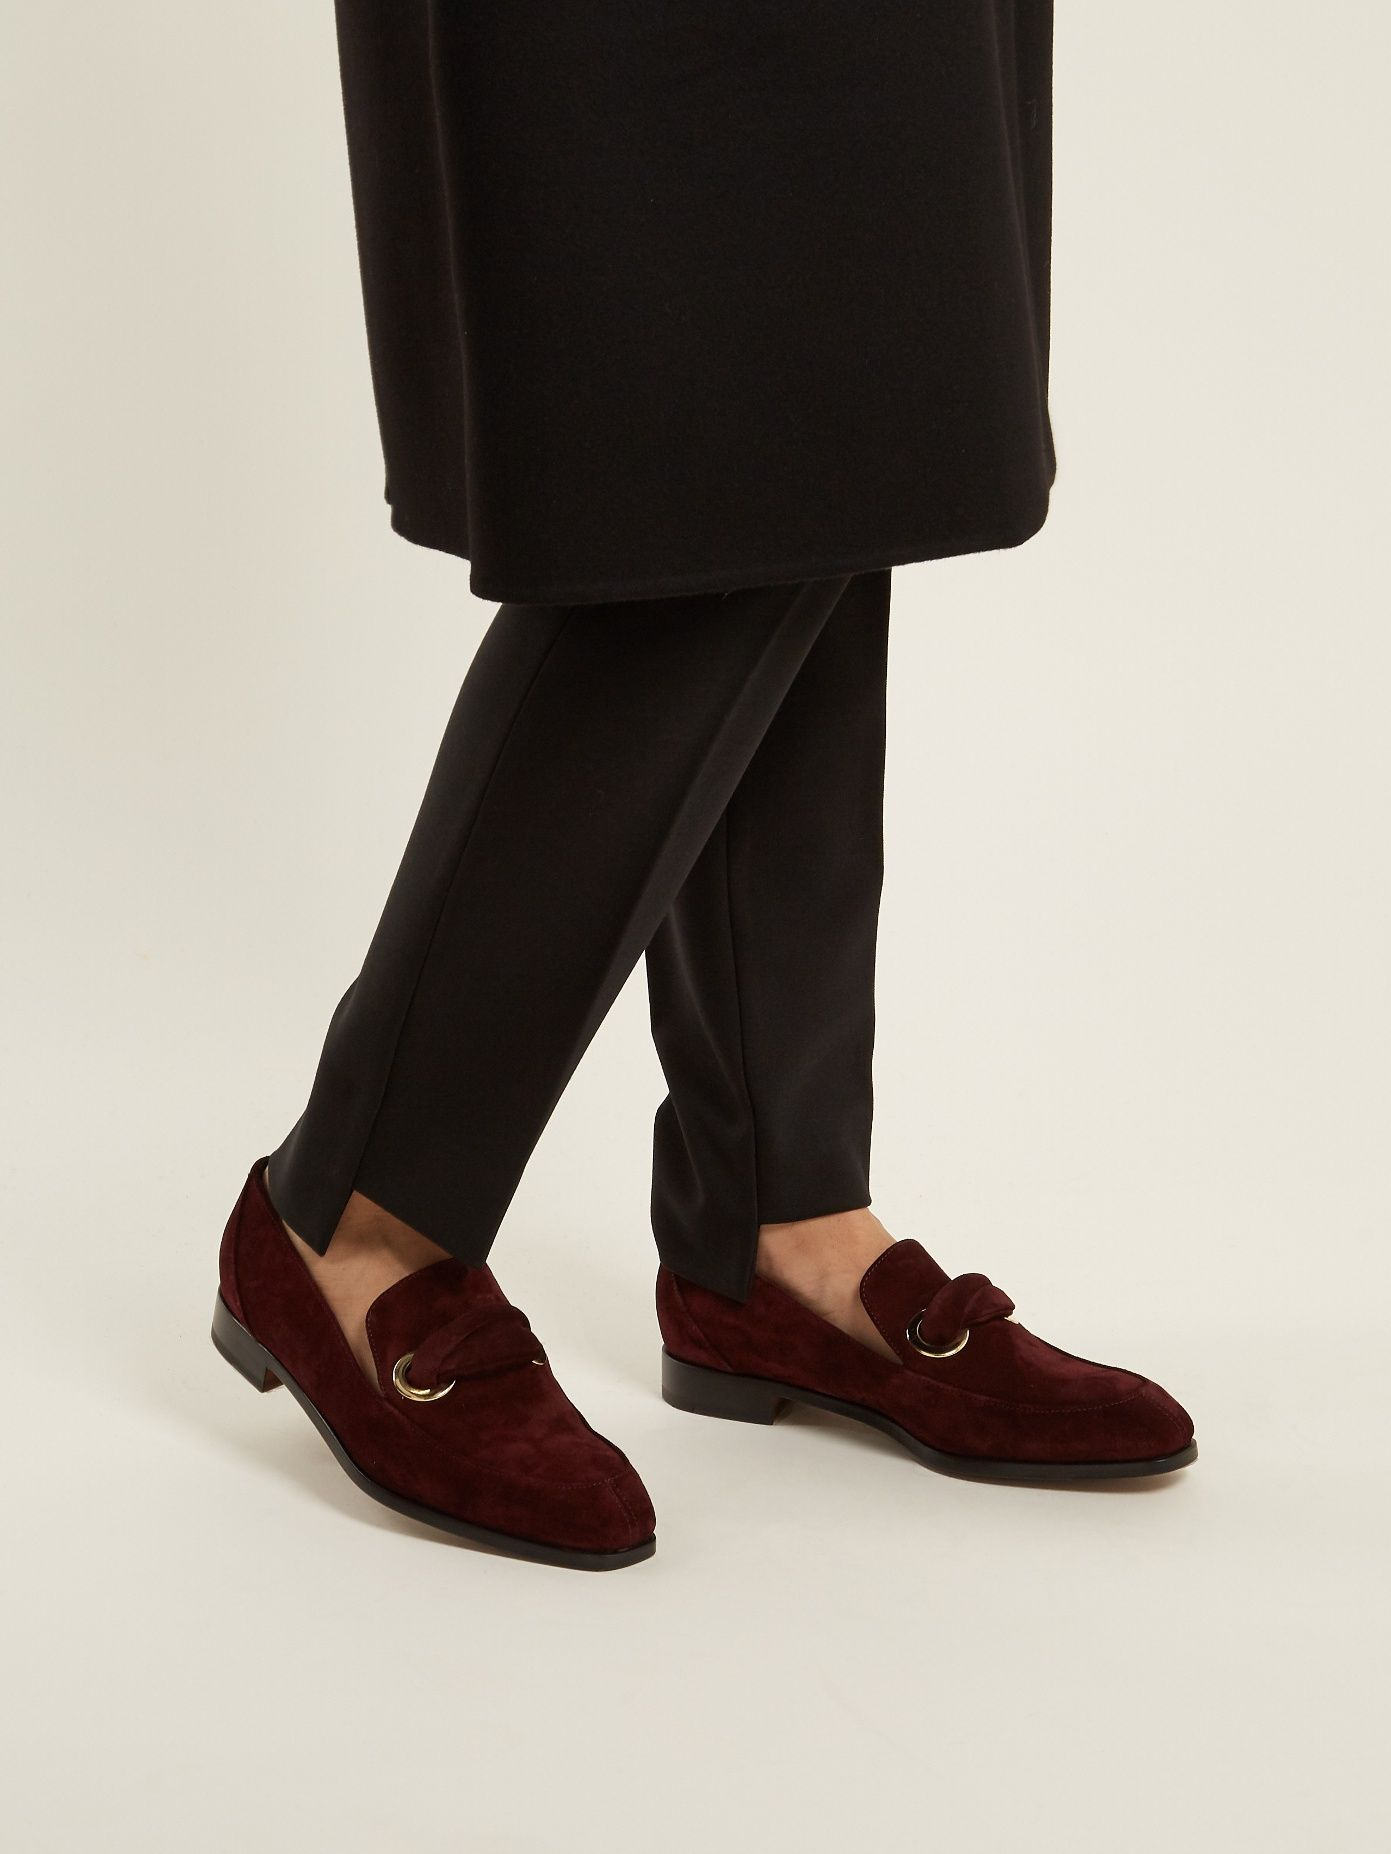 For Sale Cheap Real Outlet Cheap Prices Rupert Sanderson Pickering suede loafers Free Shipping Shopping Online Classic kmQaryiDeQ